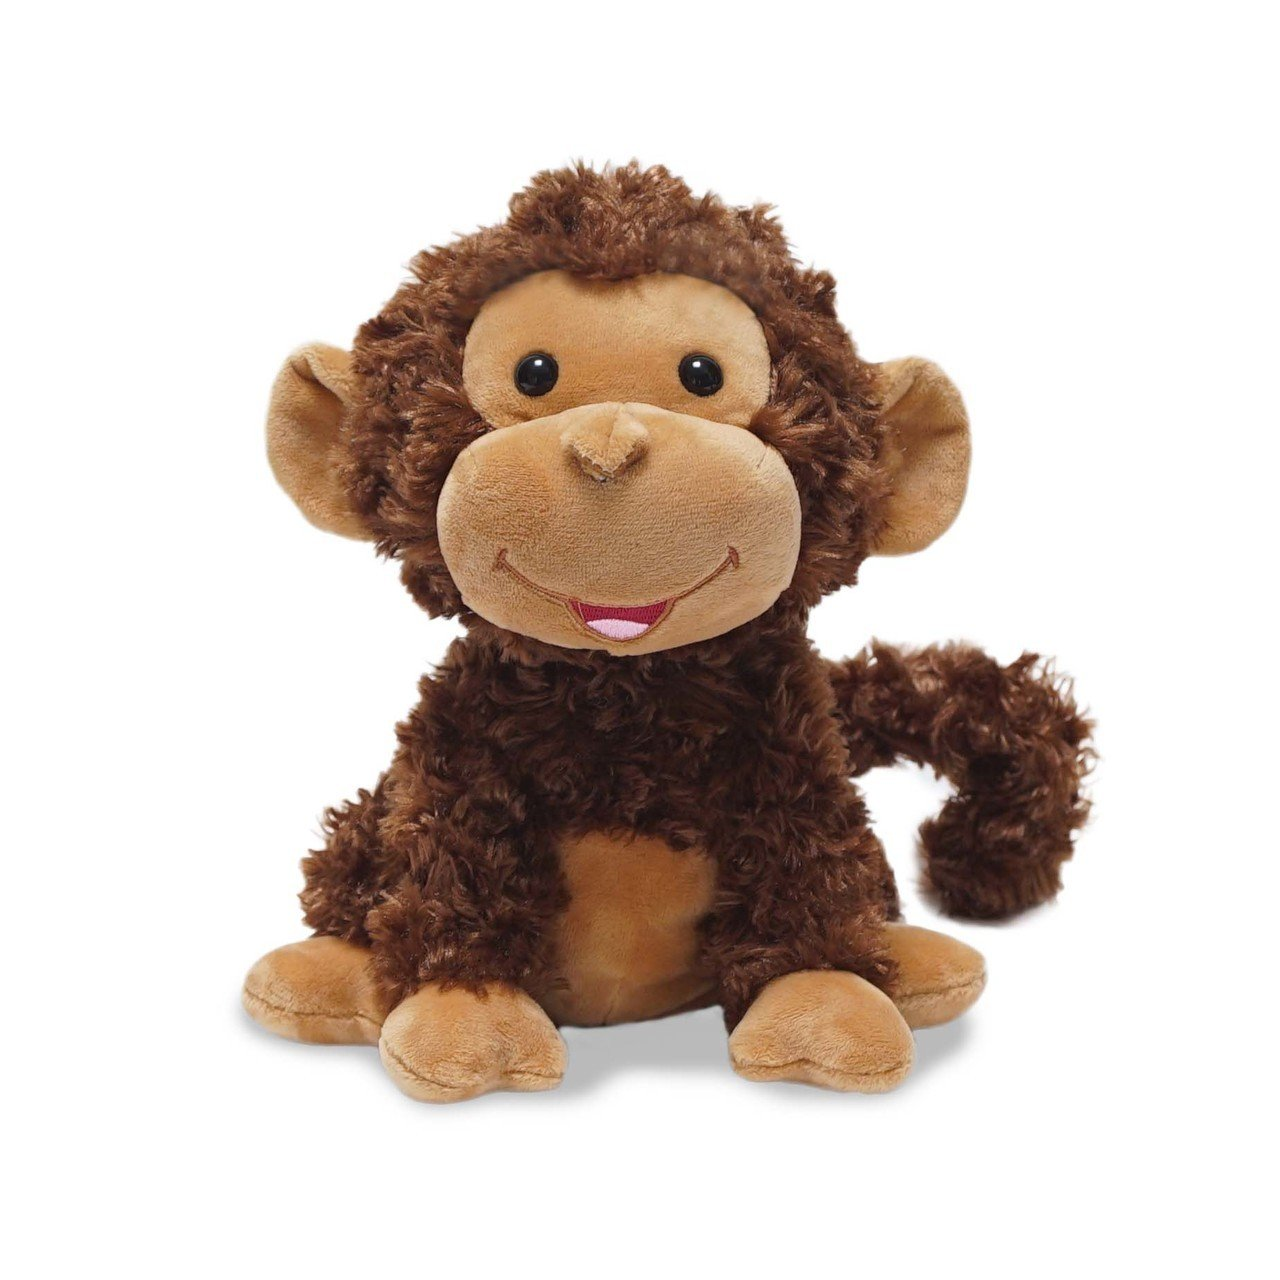 Cuddle Barn Crackin' Up Coco Monkey Animated Musical Plush Toy, 10'' Super Soft Cuddly Stuffed Animal Will Have Your Child Cracking up at its Fun Movement, Contagious Laughter and Funny Monkey Noises by Cuddle Barn